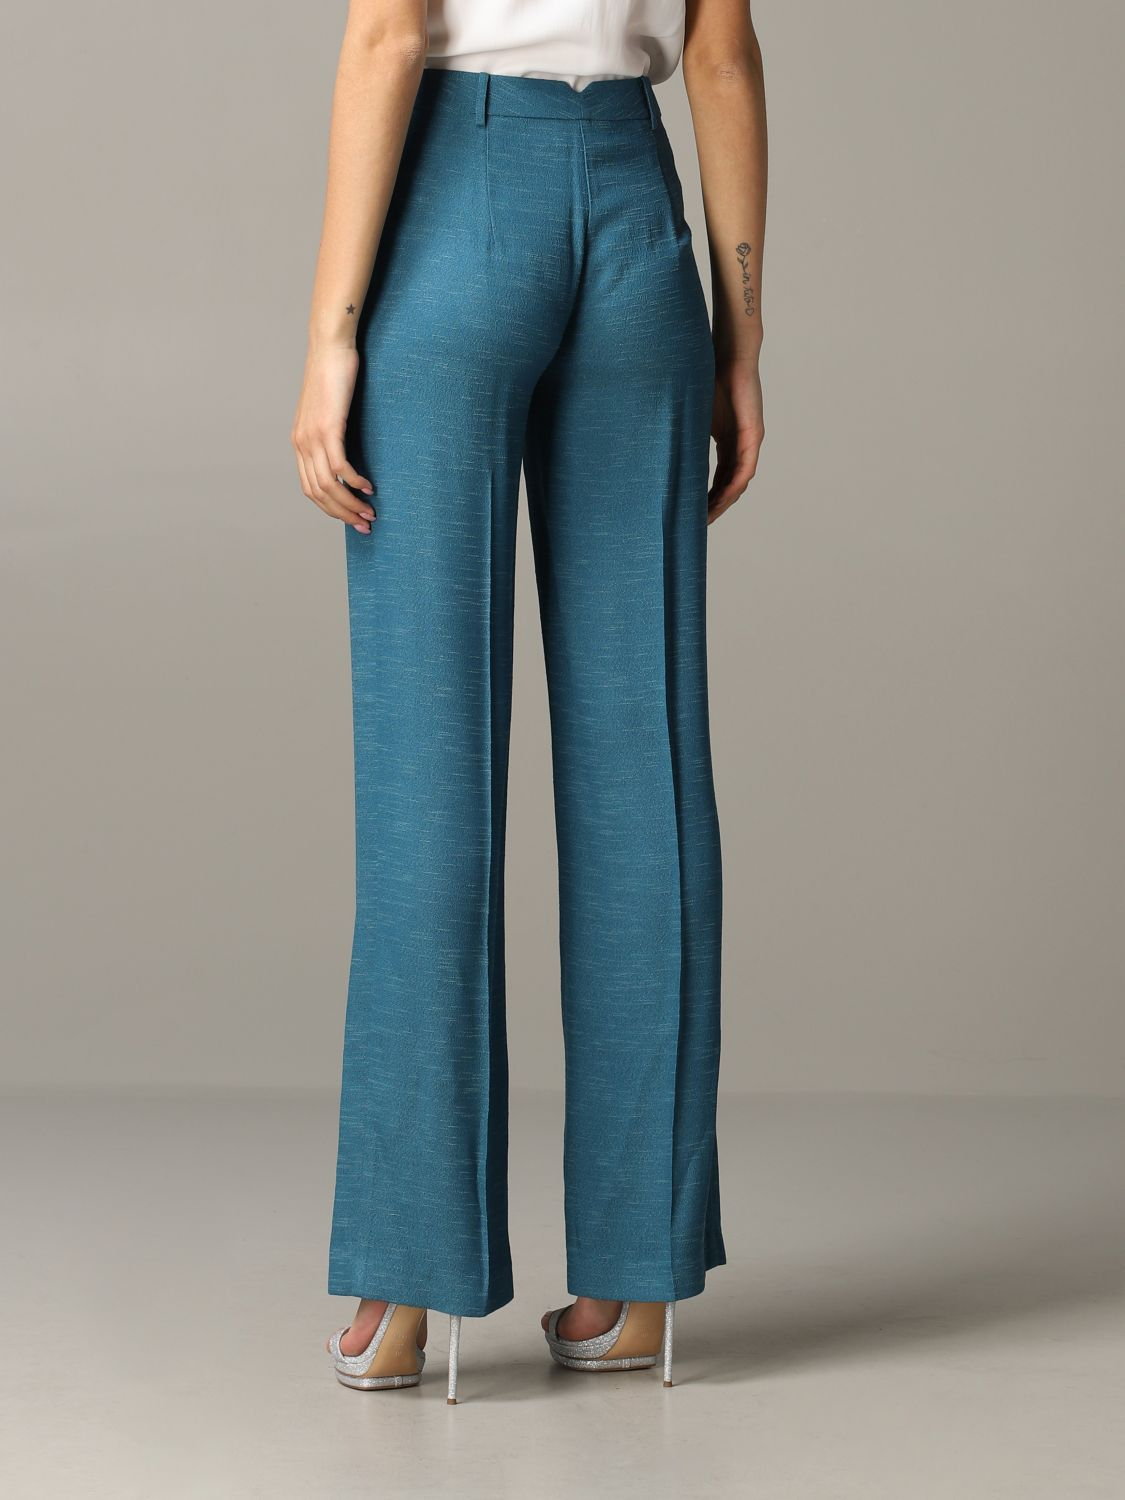 Patrizia Pepe wide trousers teal 3